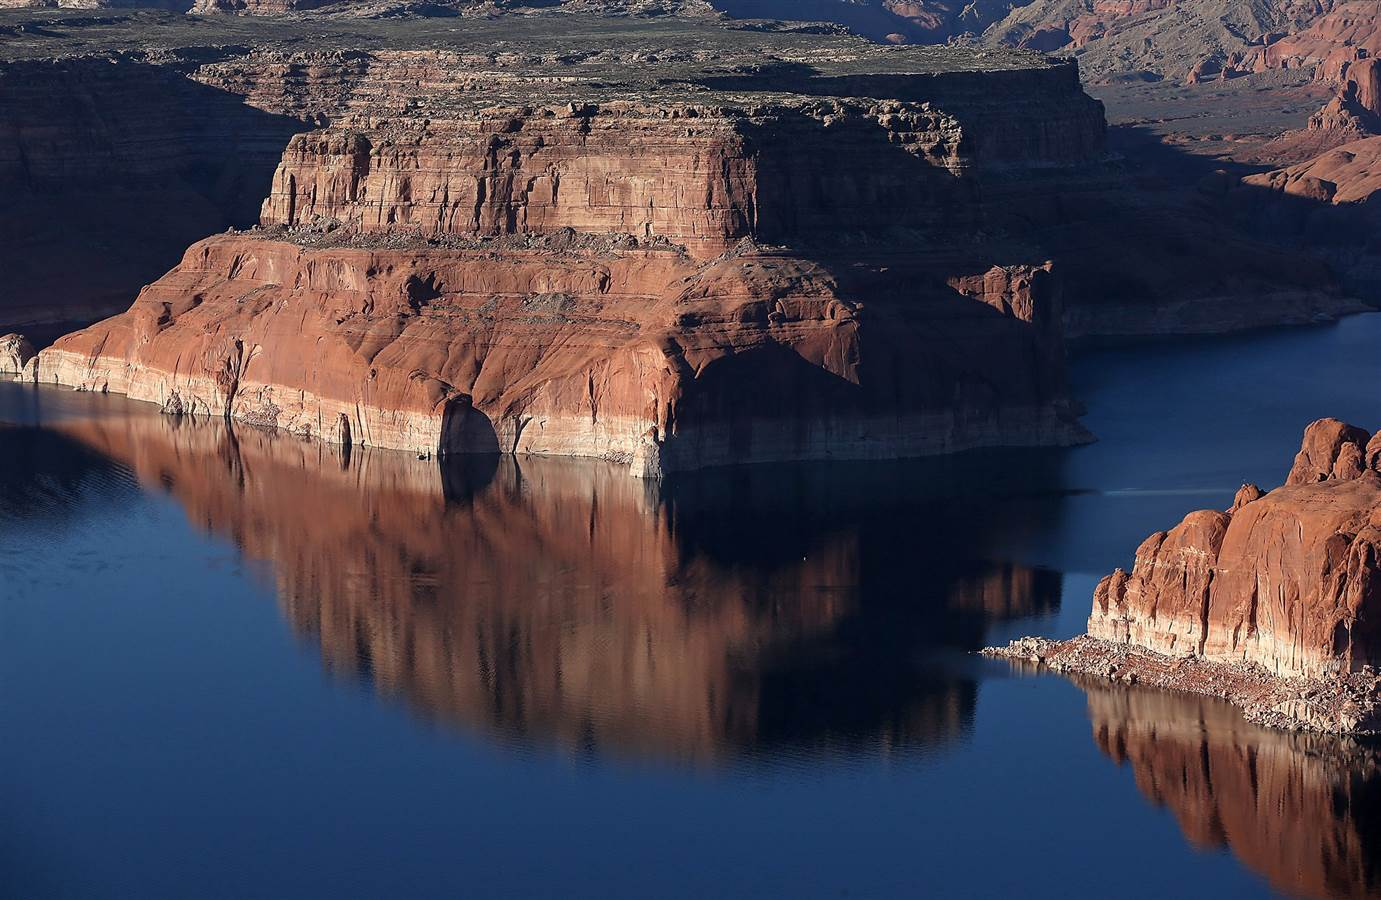 Lake Powell, currently the largest  reservoir in the United States is far below its normal water level.